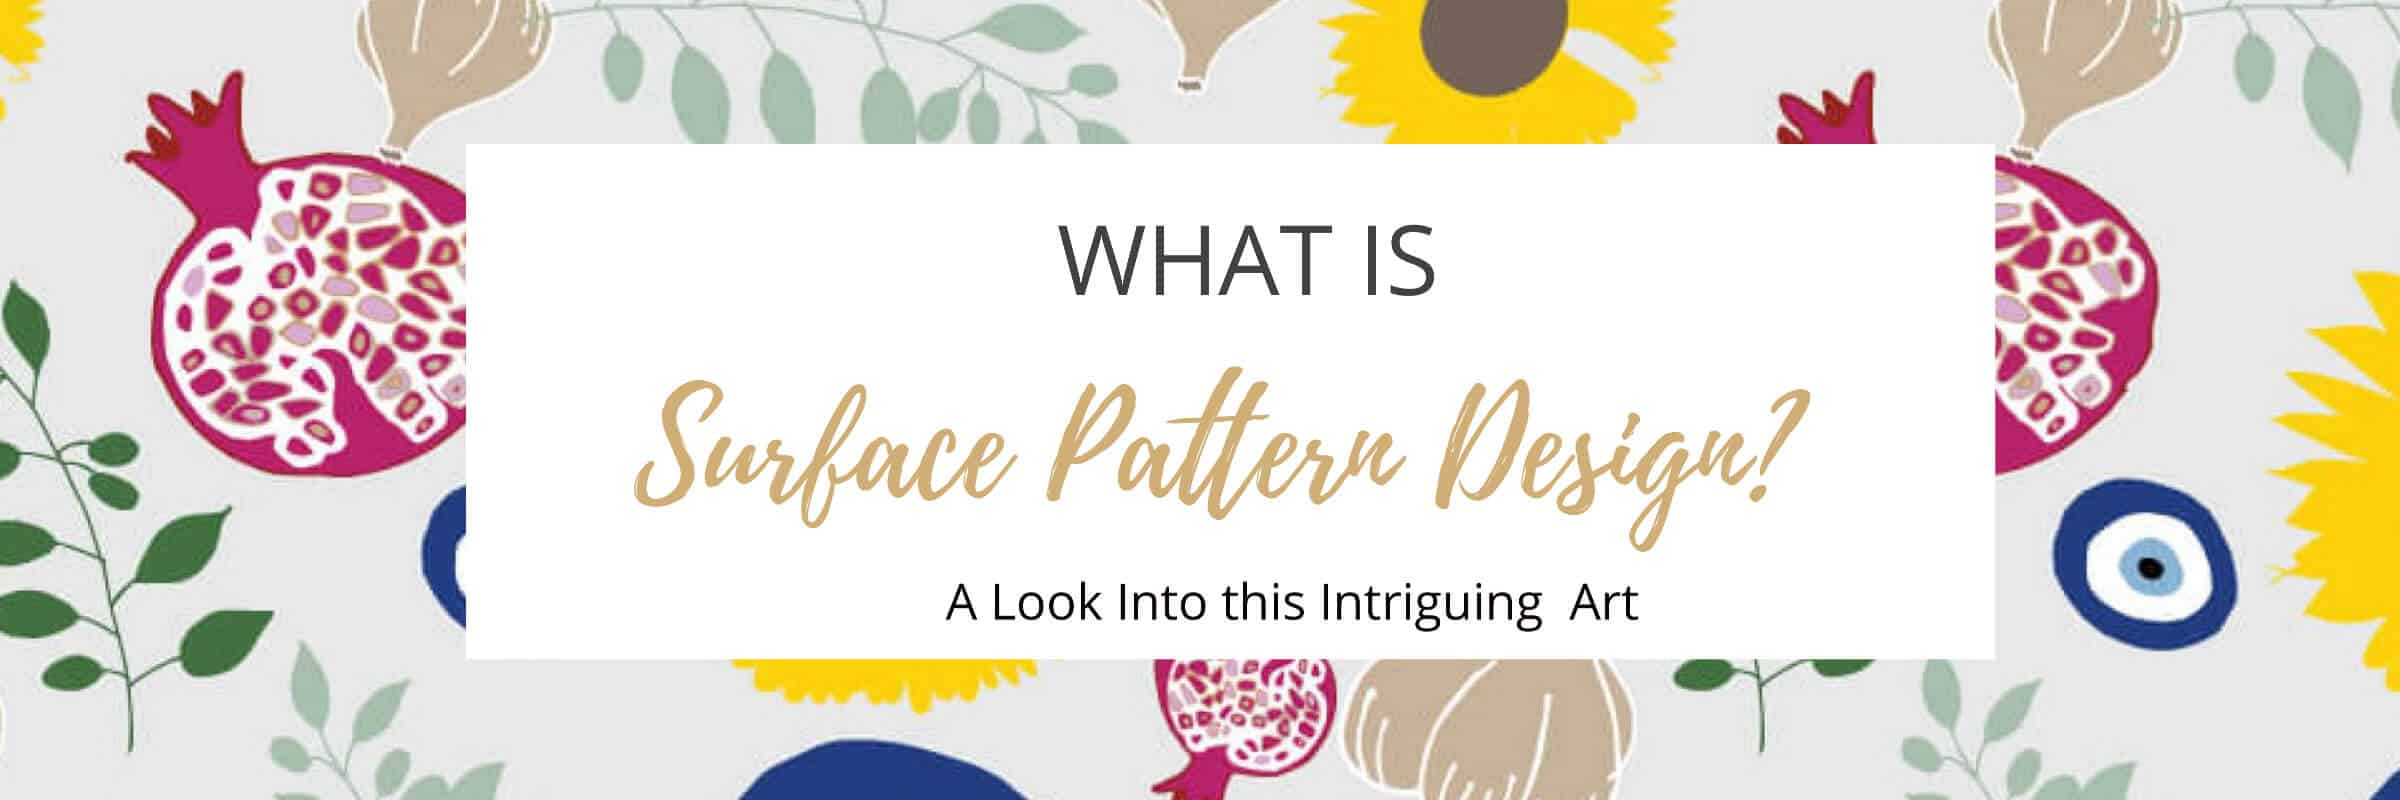 What is Surface Pattern Design Slider Image with Mediterrean Surface Pattern